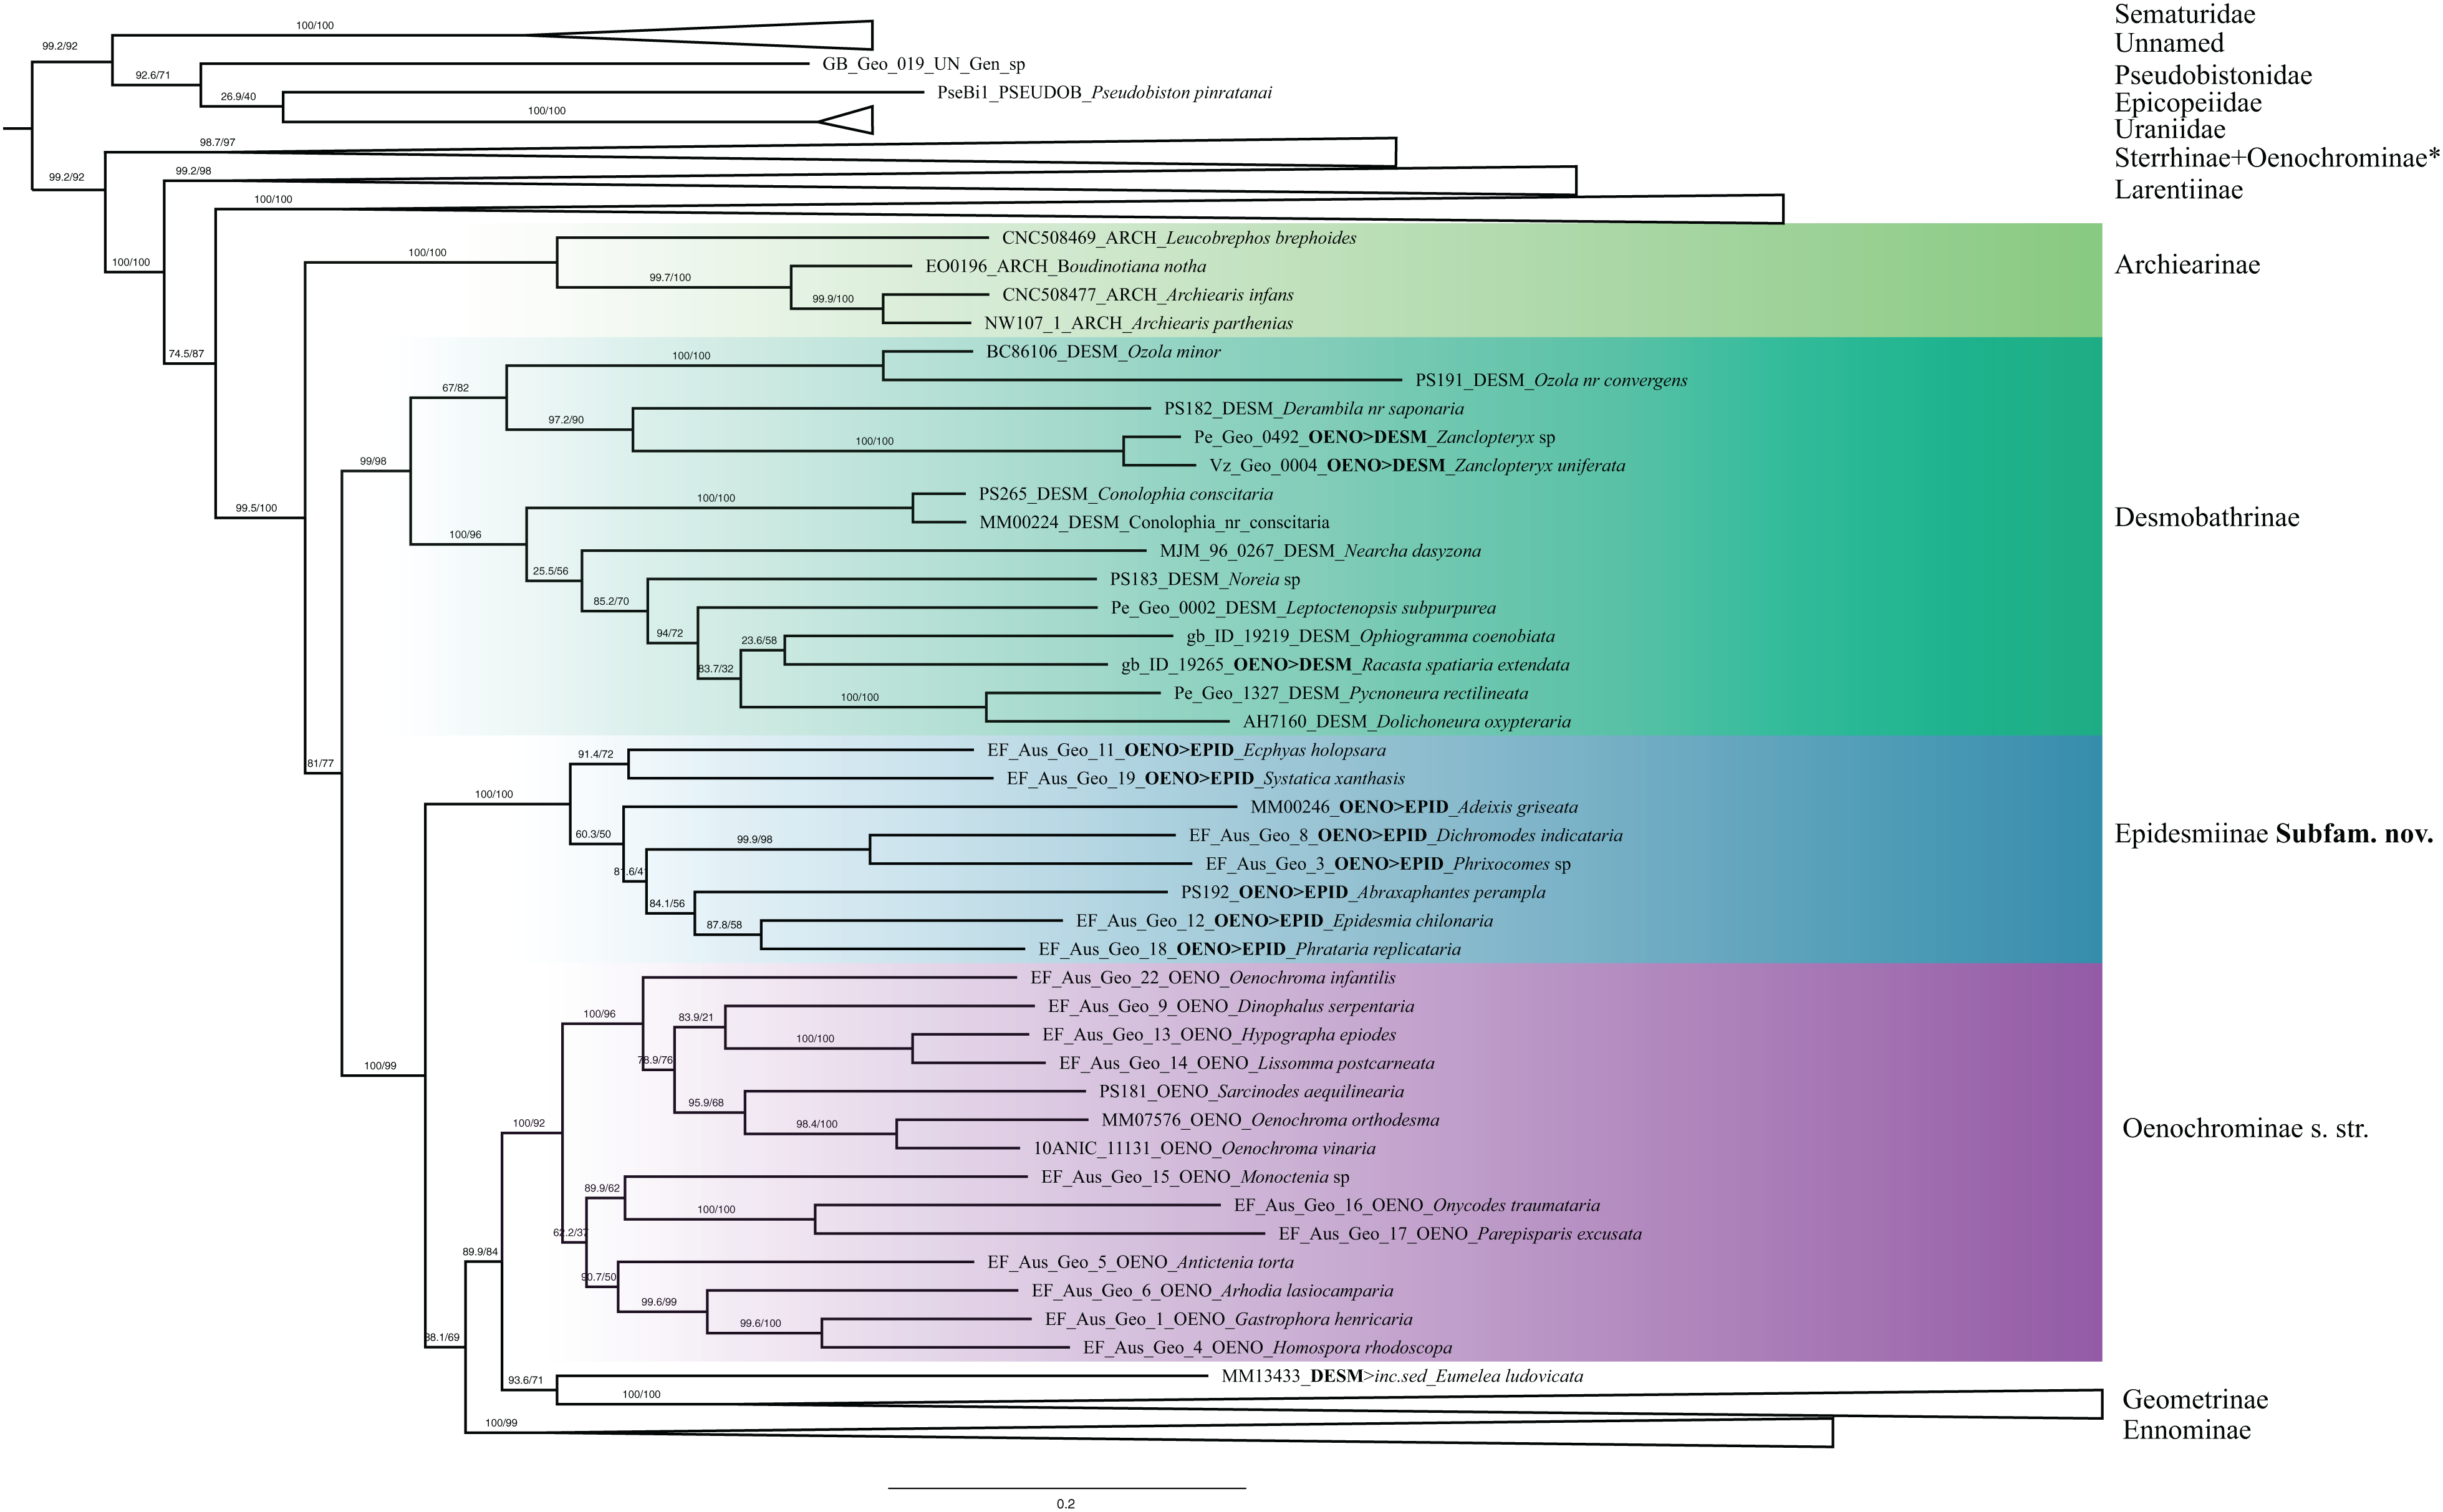 A comprehensive molecular phylogeny of Geometridae